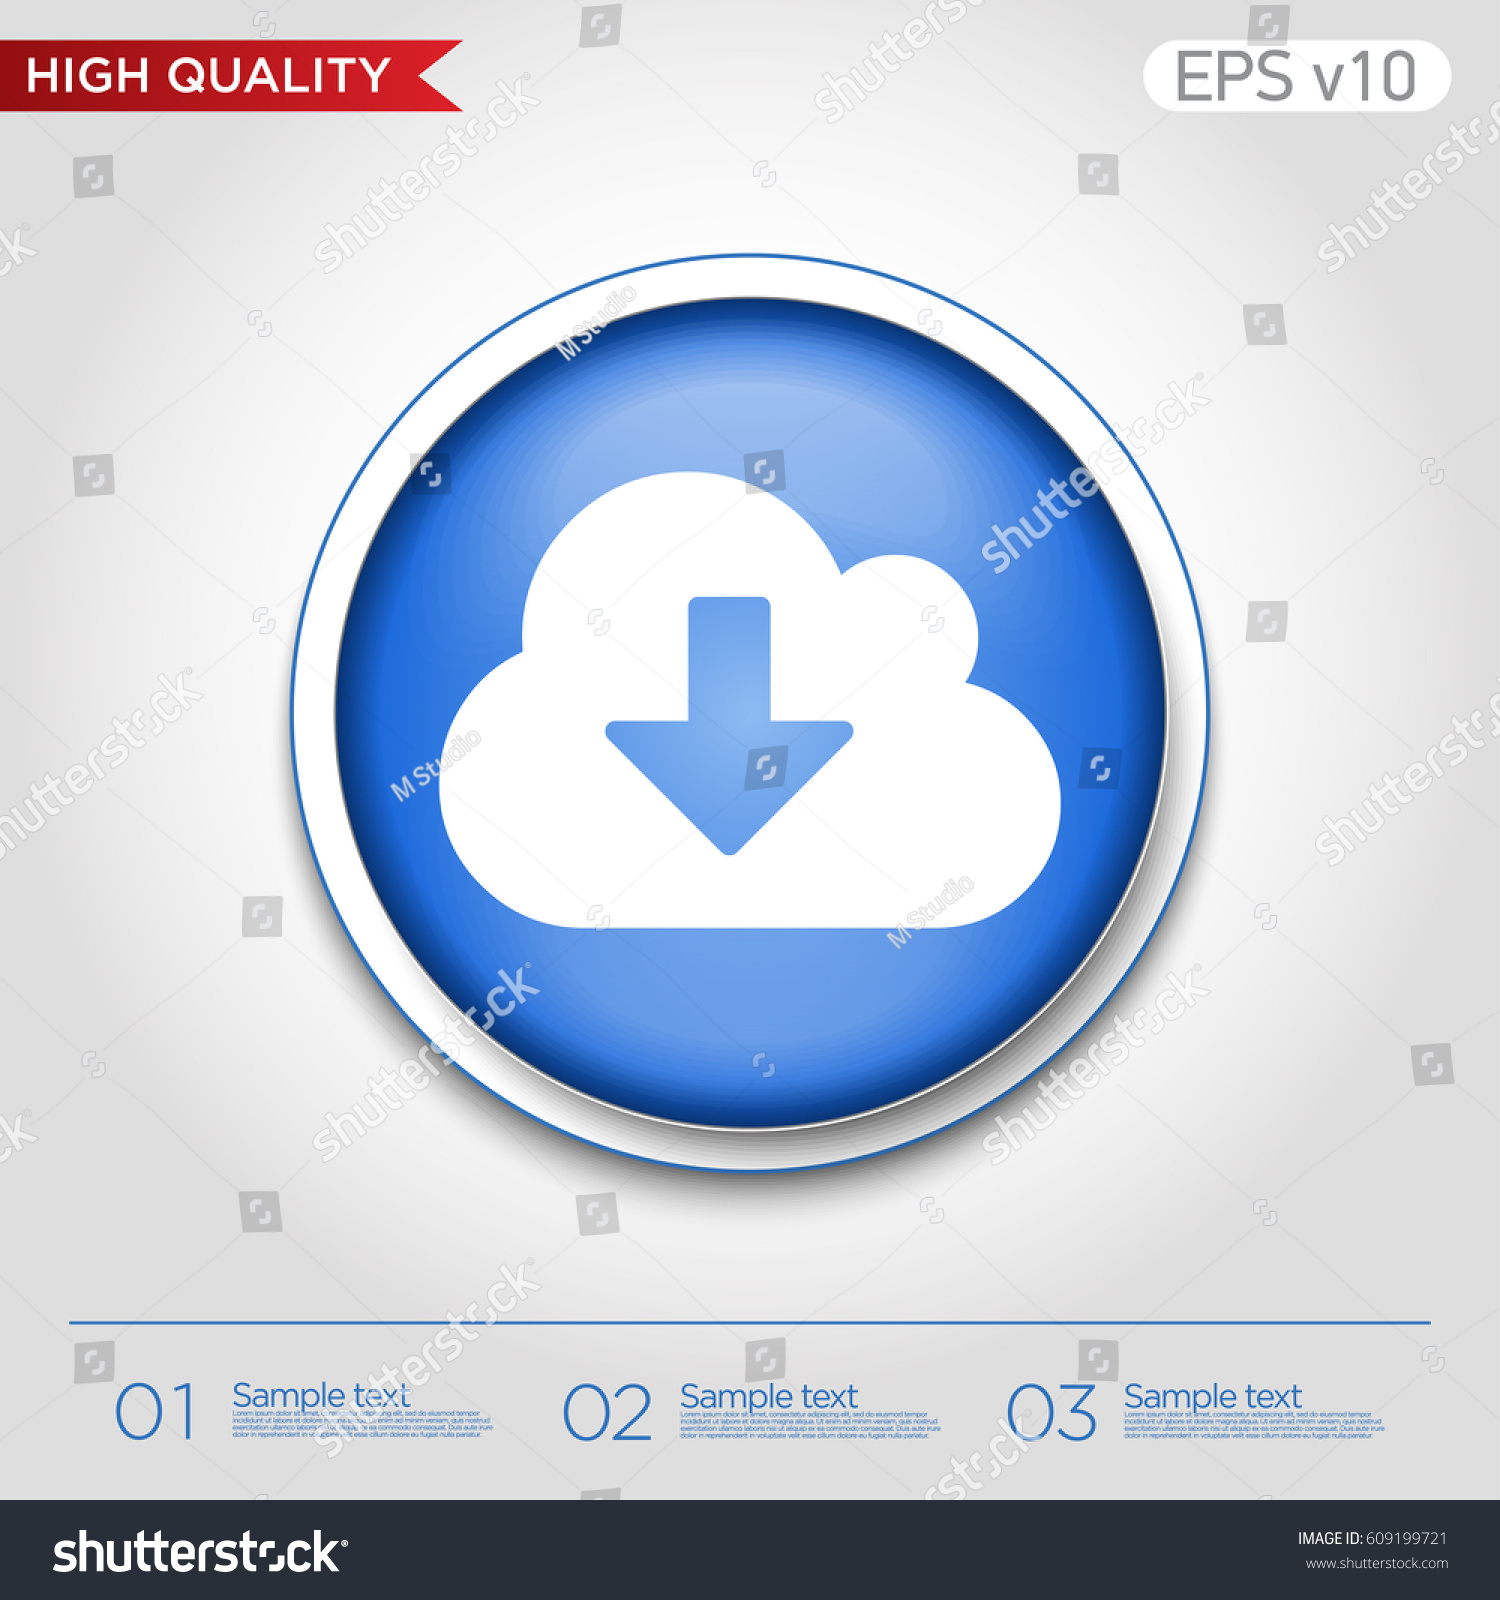 Colored icon button download cloud symbol stock vector 609199721 colored icon or button of download from cloud symbol with background biocorpaavc Gallery